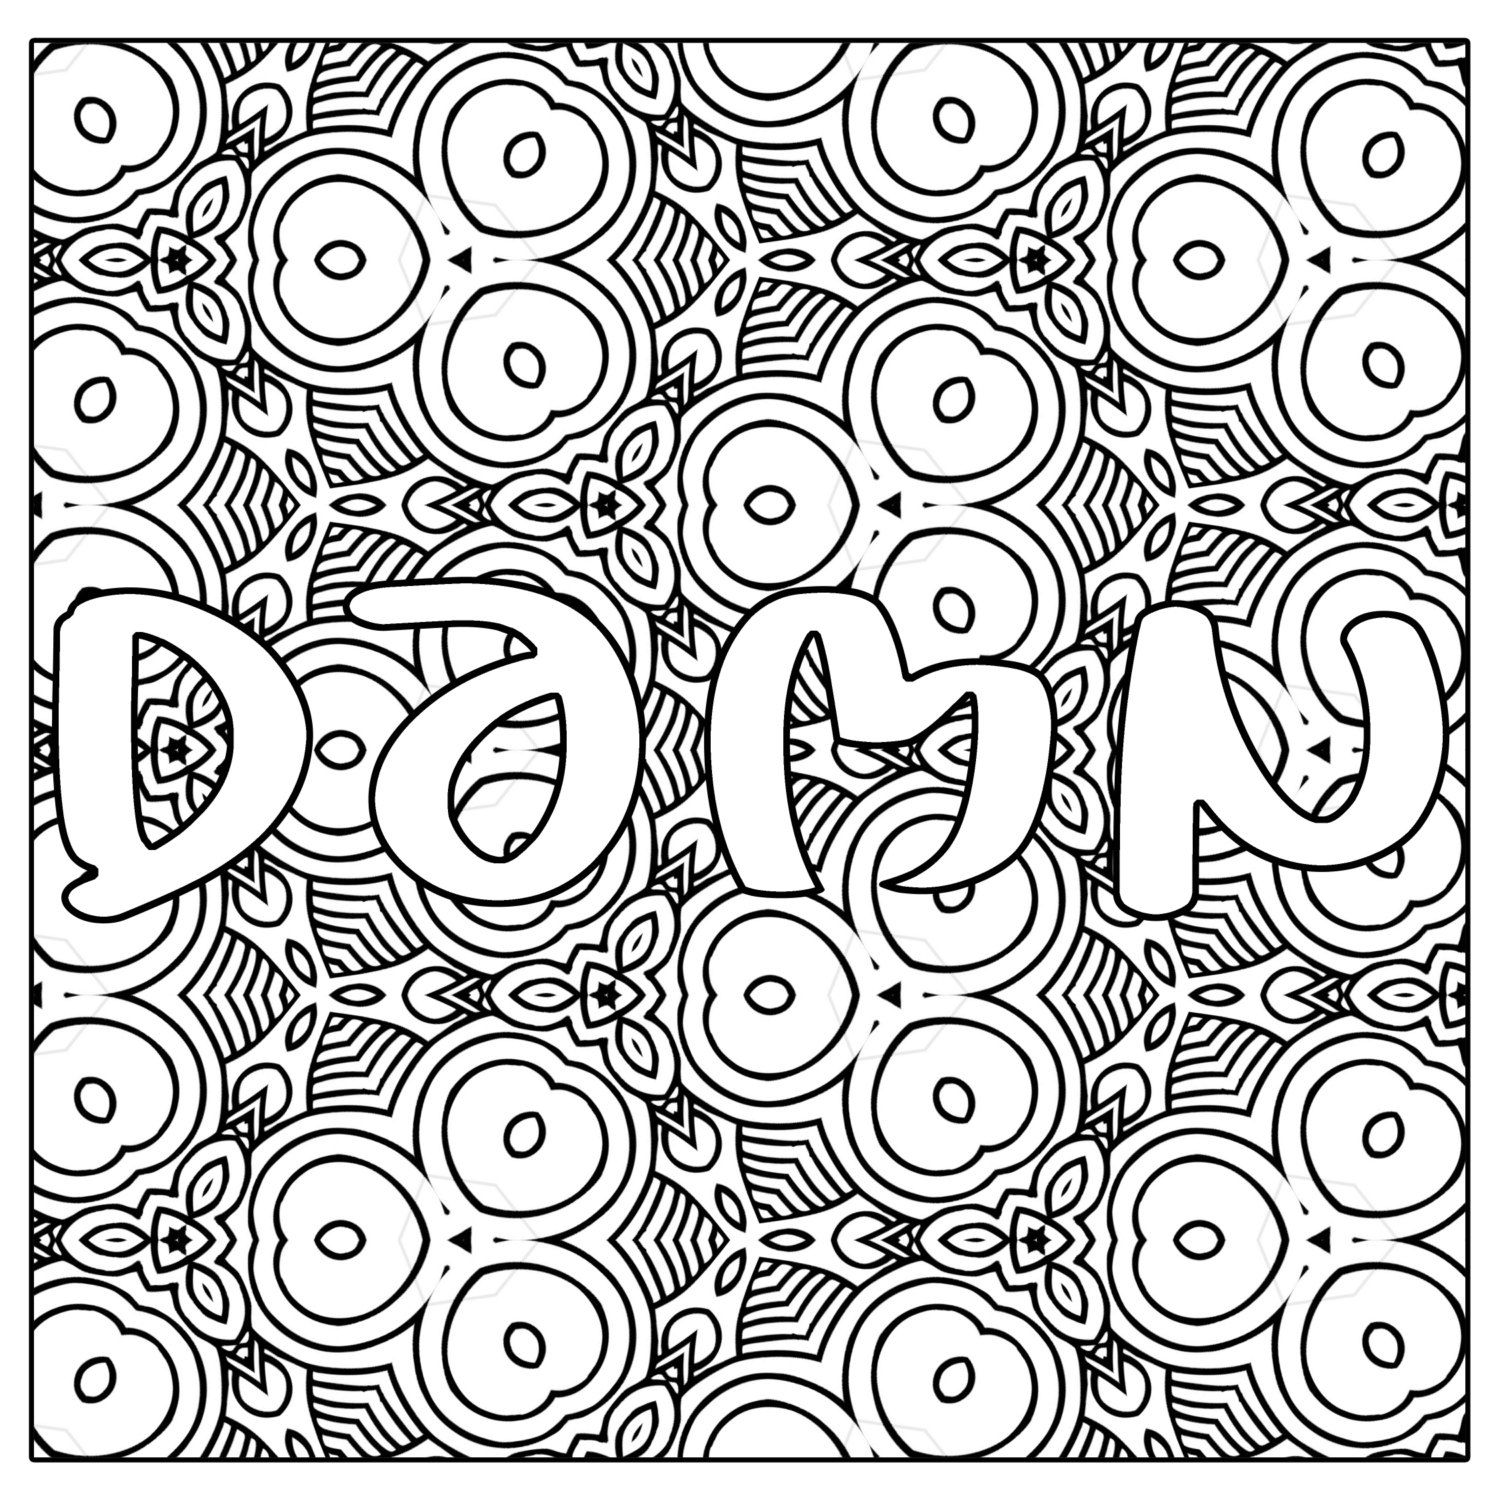 Bad word coloring pages - Dmn Swear Word Coloring Page Jpg Instant By Thinkprintableart